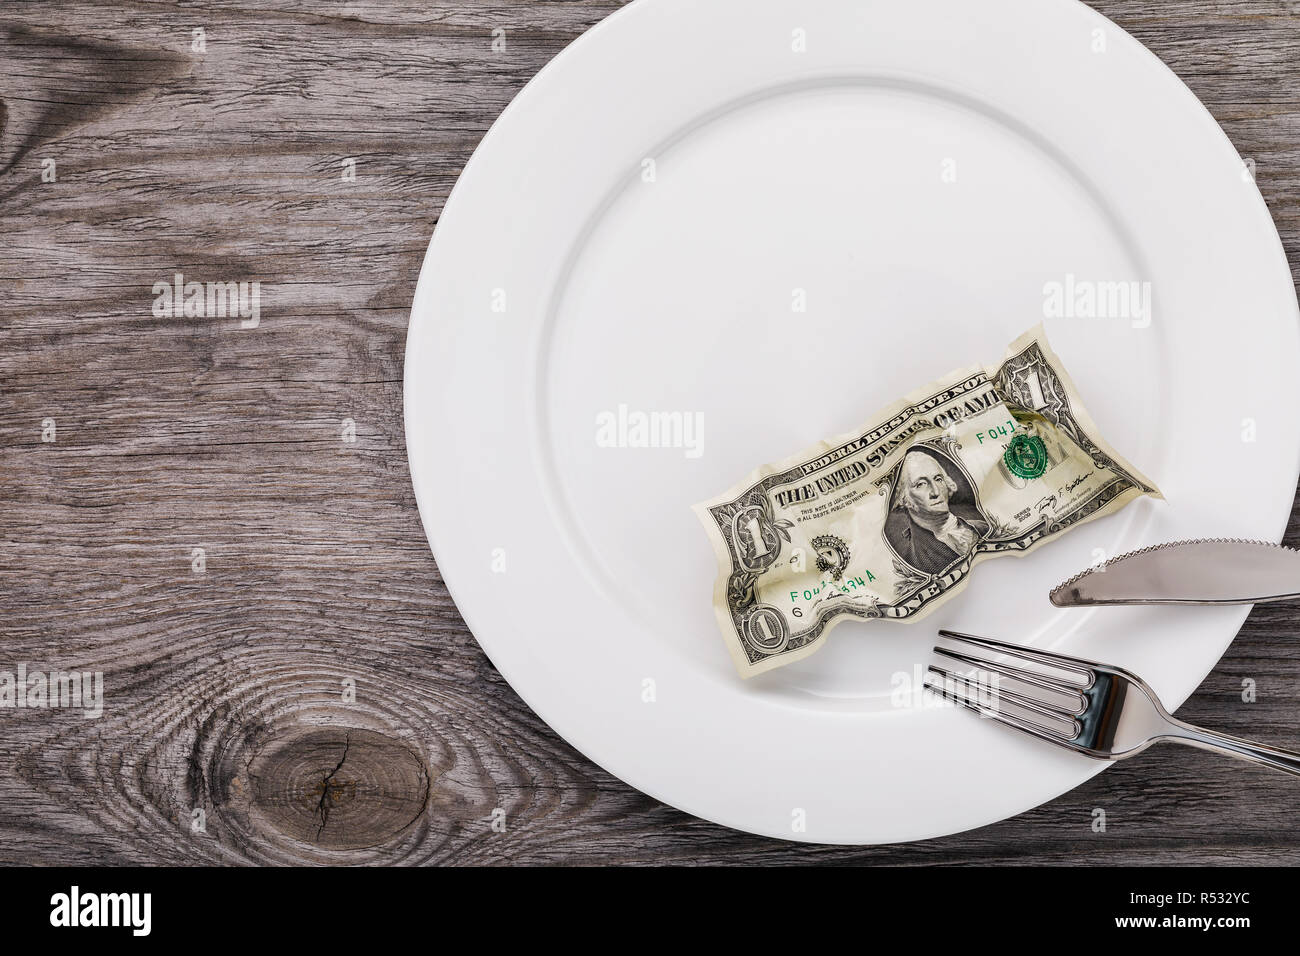 Top view on crumpled dollar in plate close-up with copy space - Stock Image